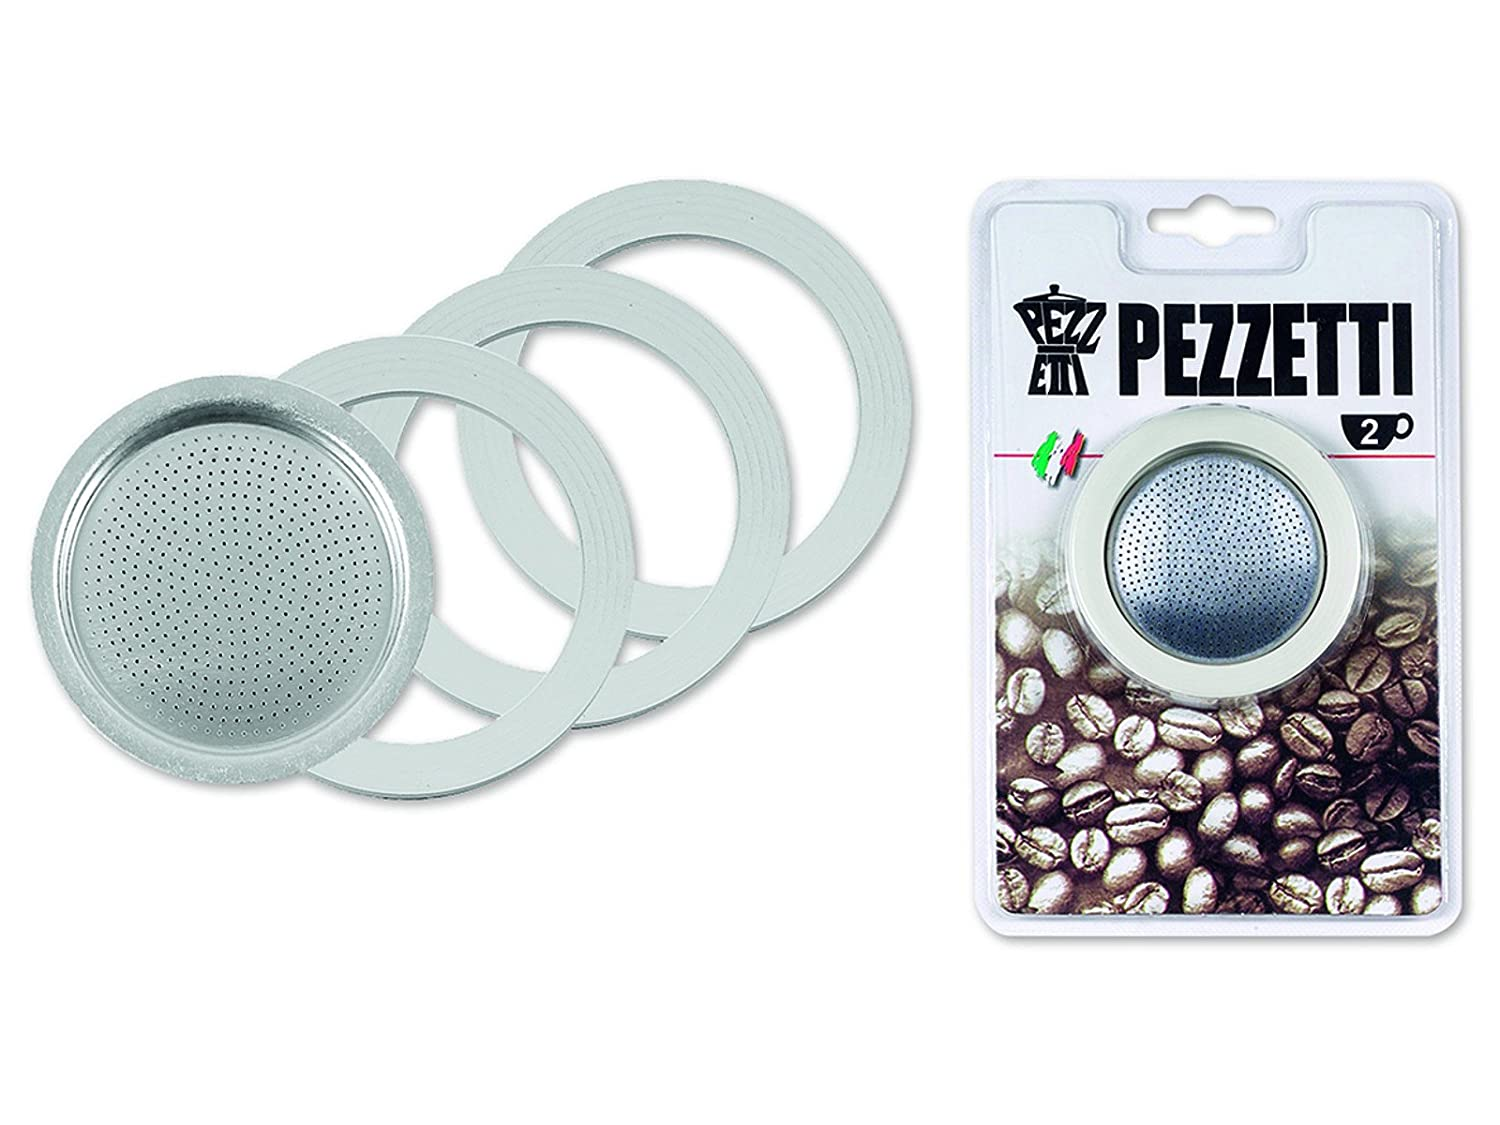 Pezzetti: Replacements (3 Rubber Rings + Filter) for 1-Cup Coffe Maker [ Italian Import ] PEZ018